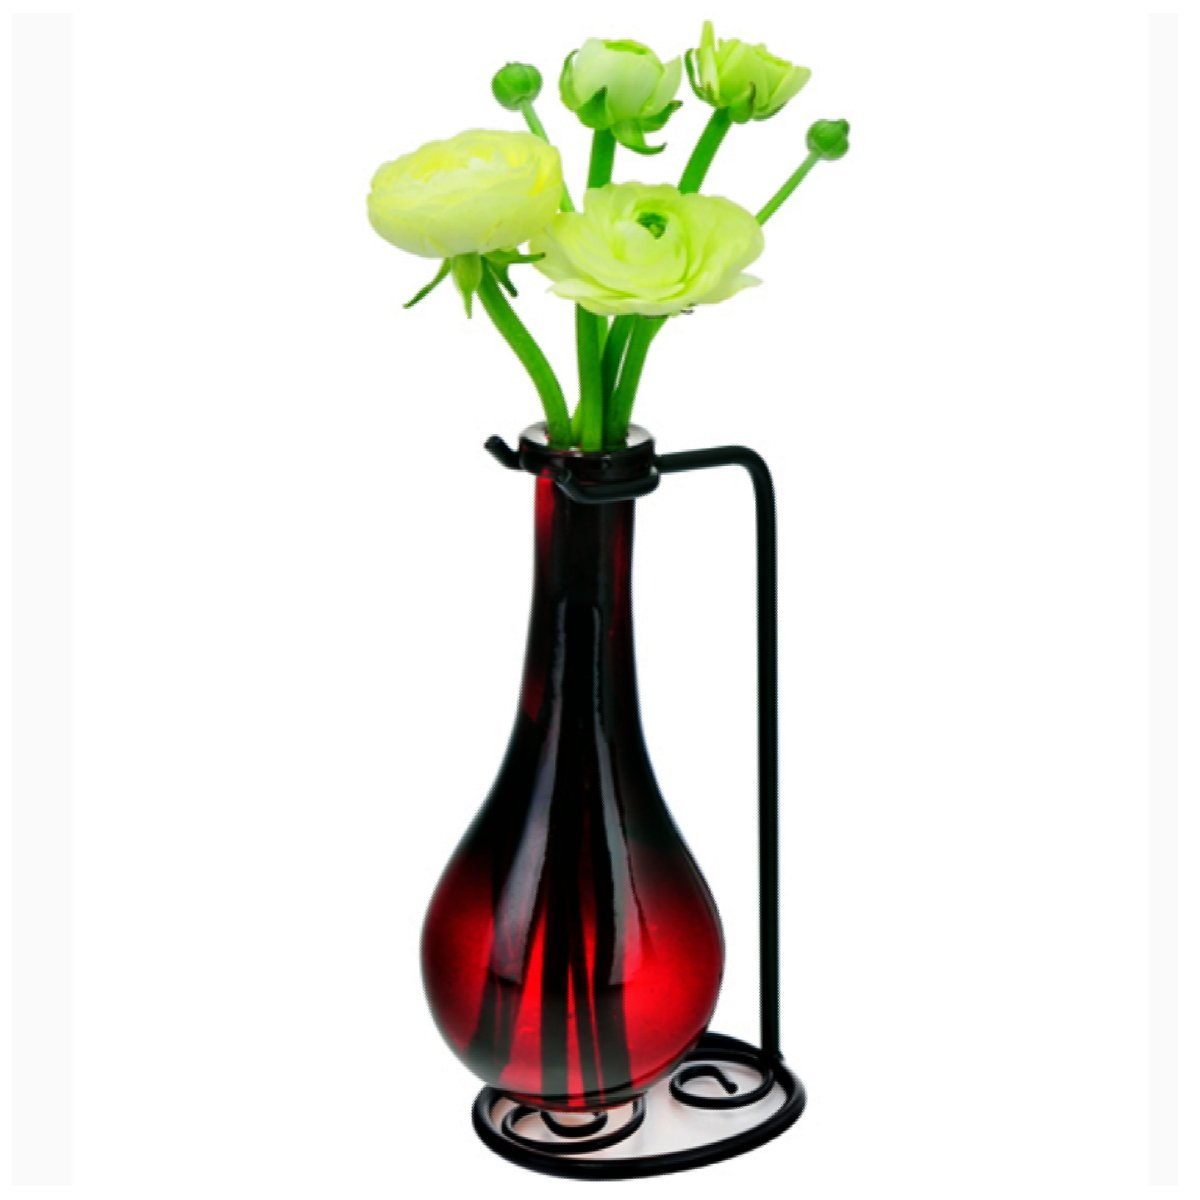 Romantic Decor and More Small Flower Vase, Contemporary Glass Vases G189VF Red Colored Glass Bottles, Home Glass Accents